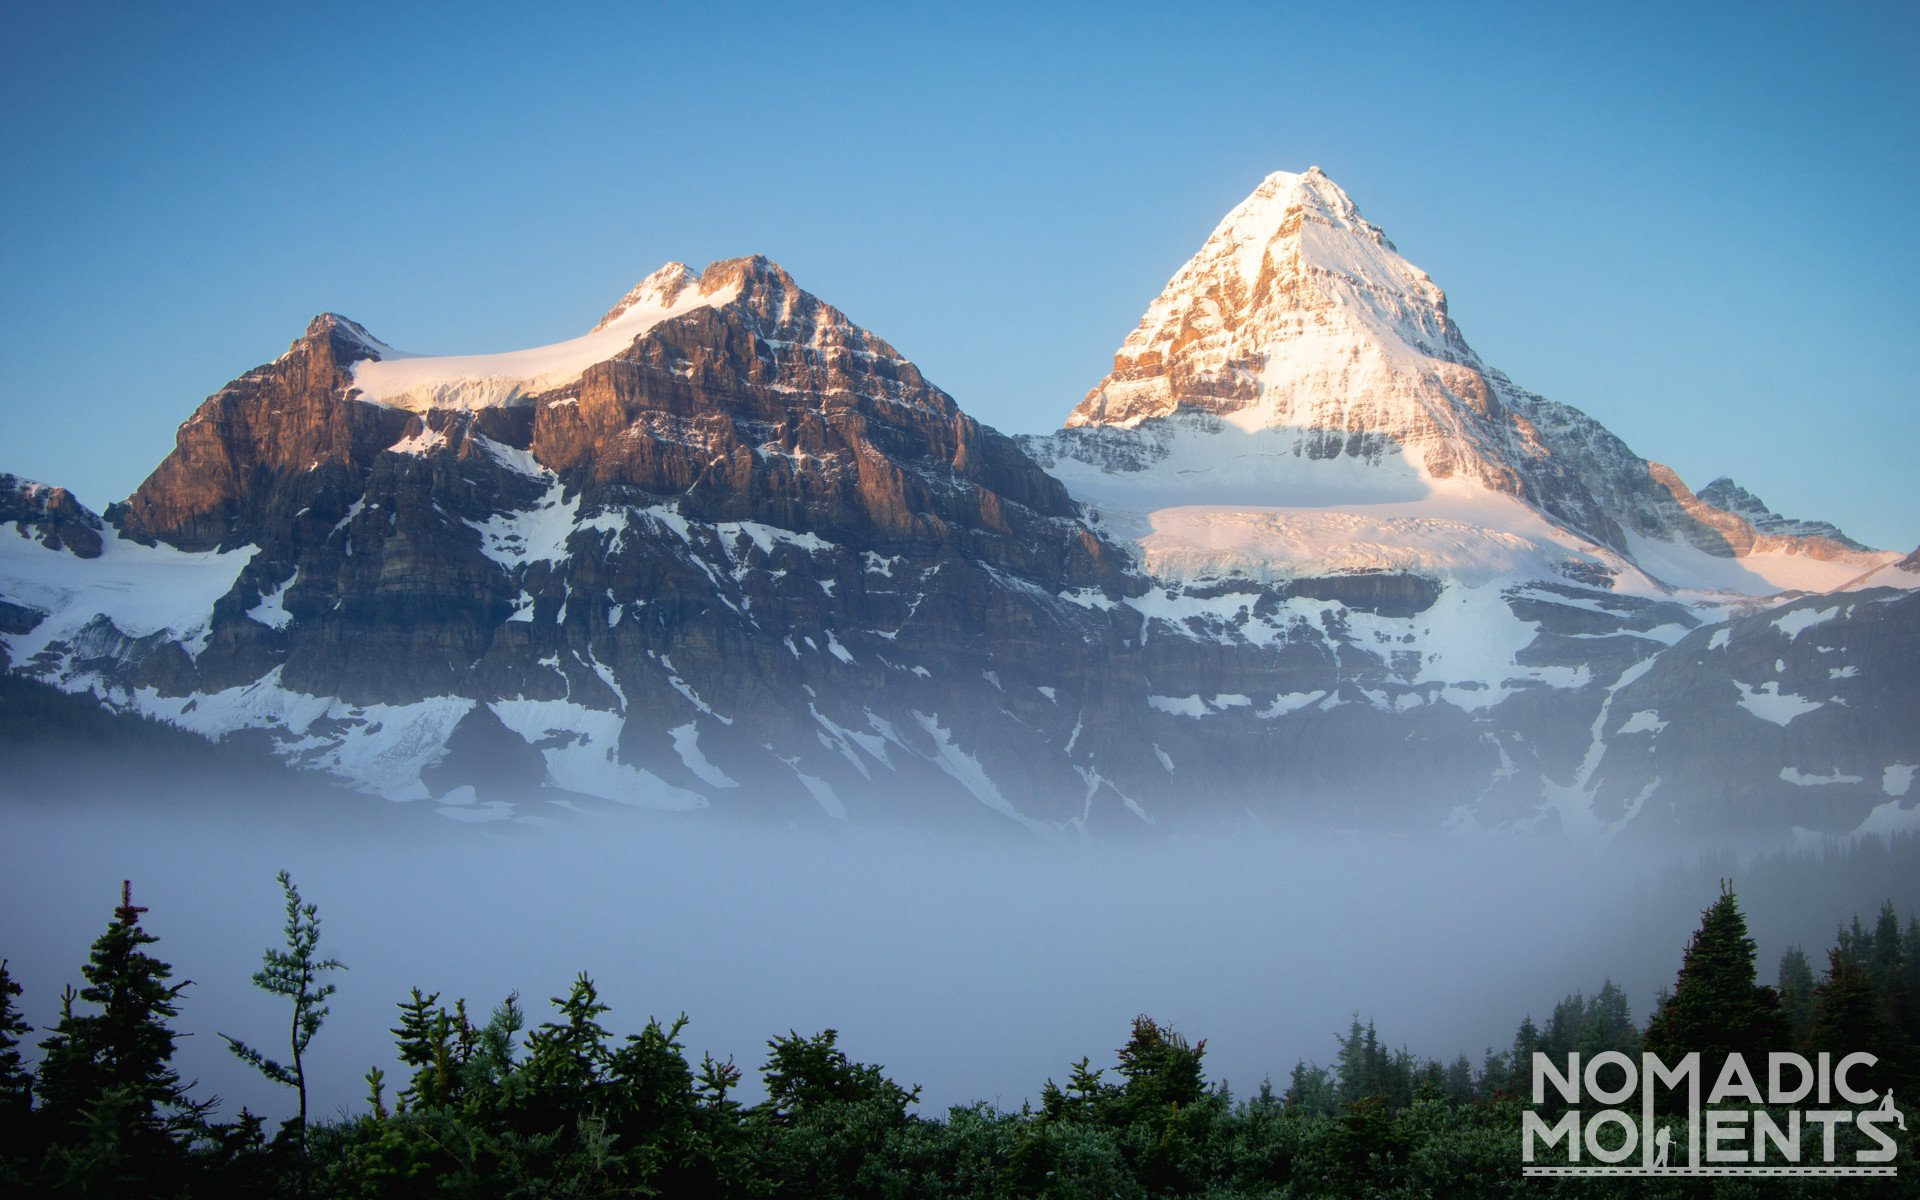 Mount Assiniboine above the Clouds